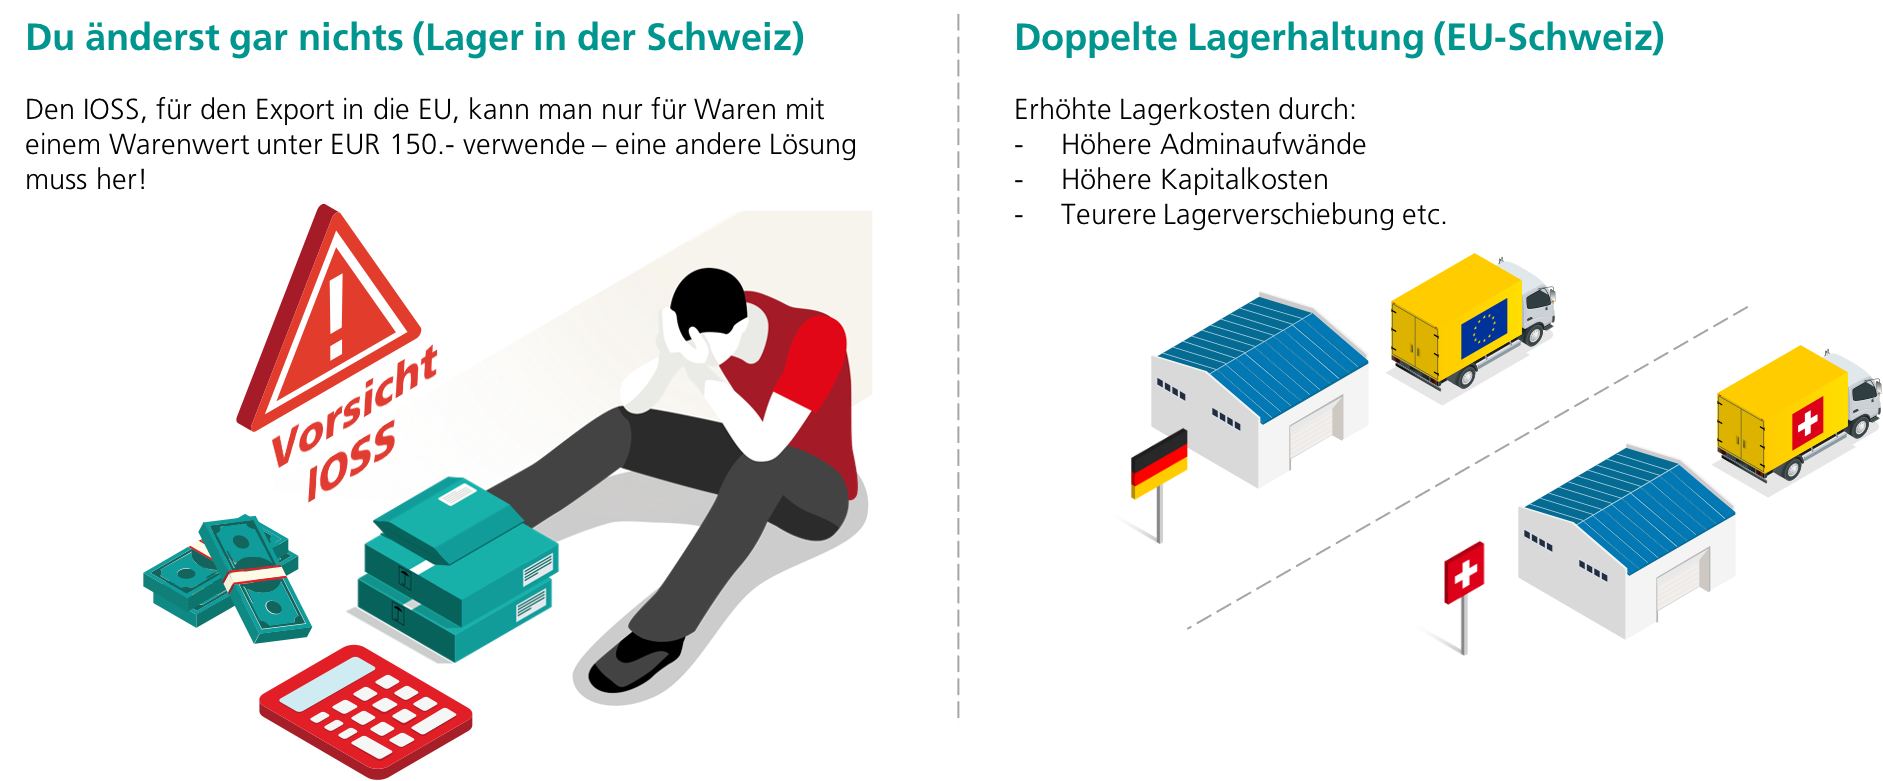 Das wären die suboptimalen Logistik Set-up's